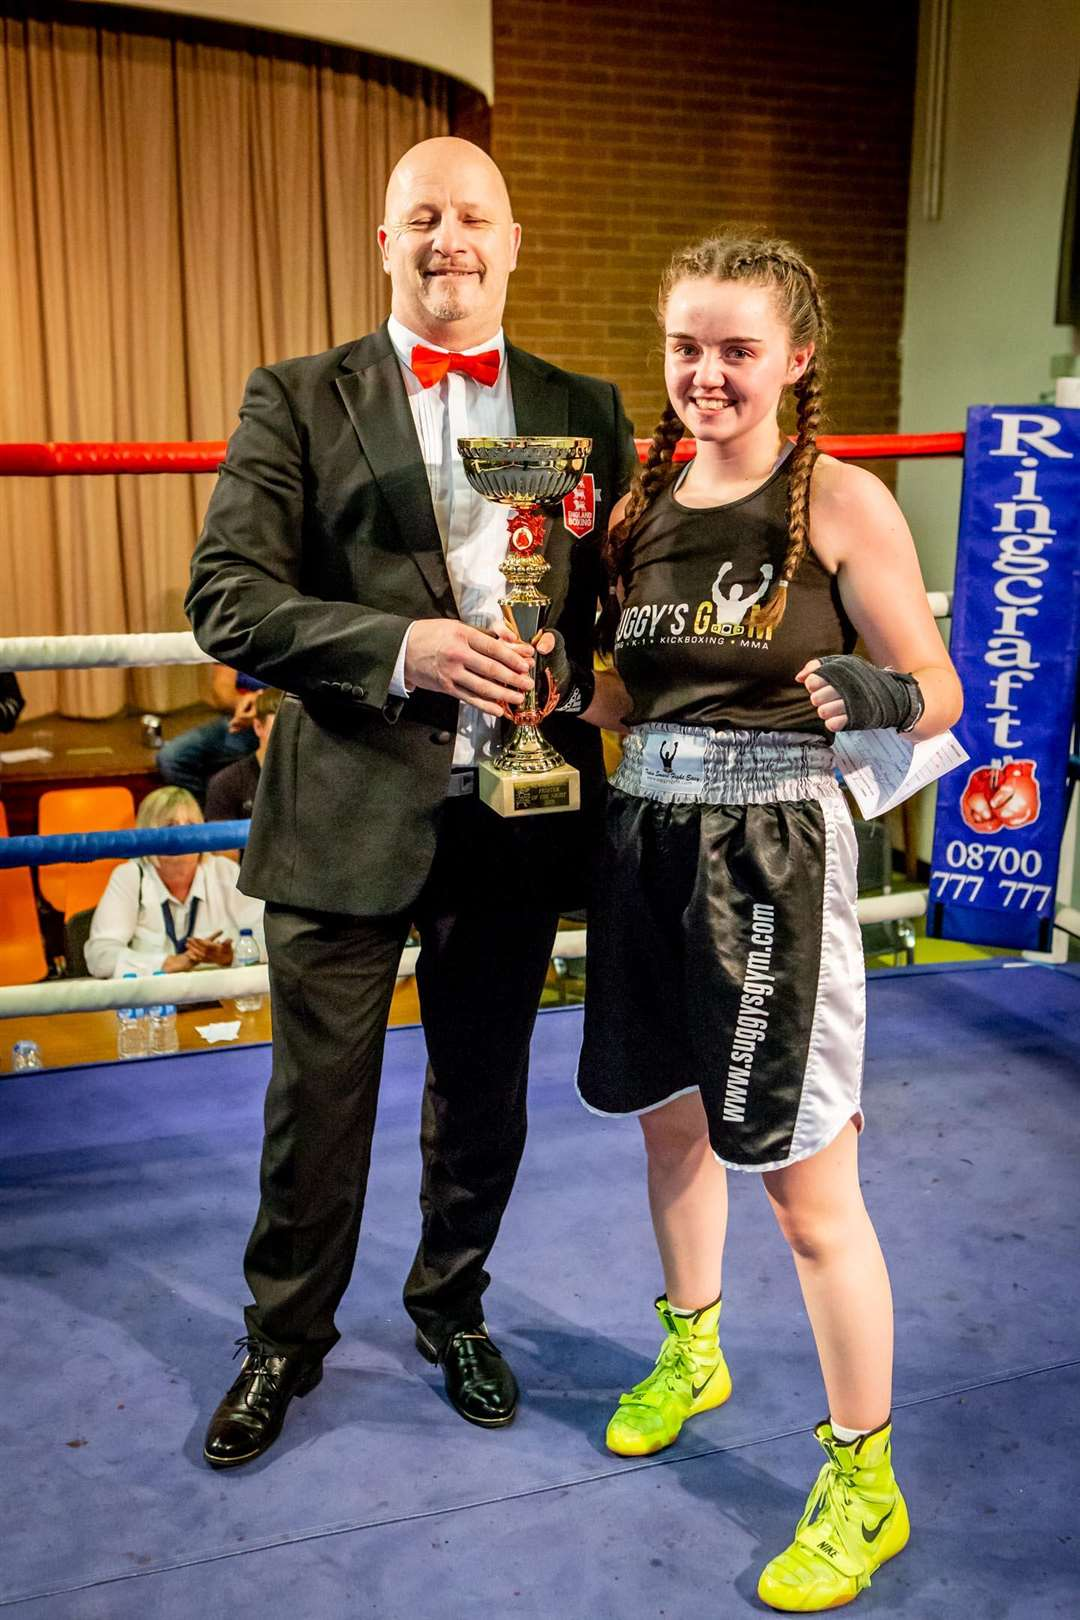 Megan Williams was crowned boxer of the night.